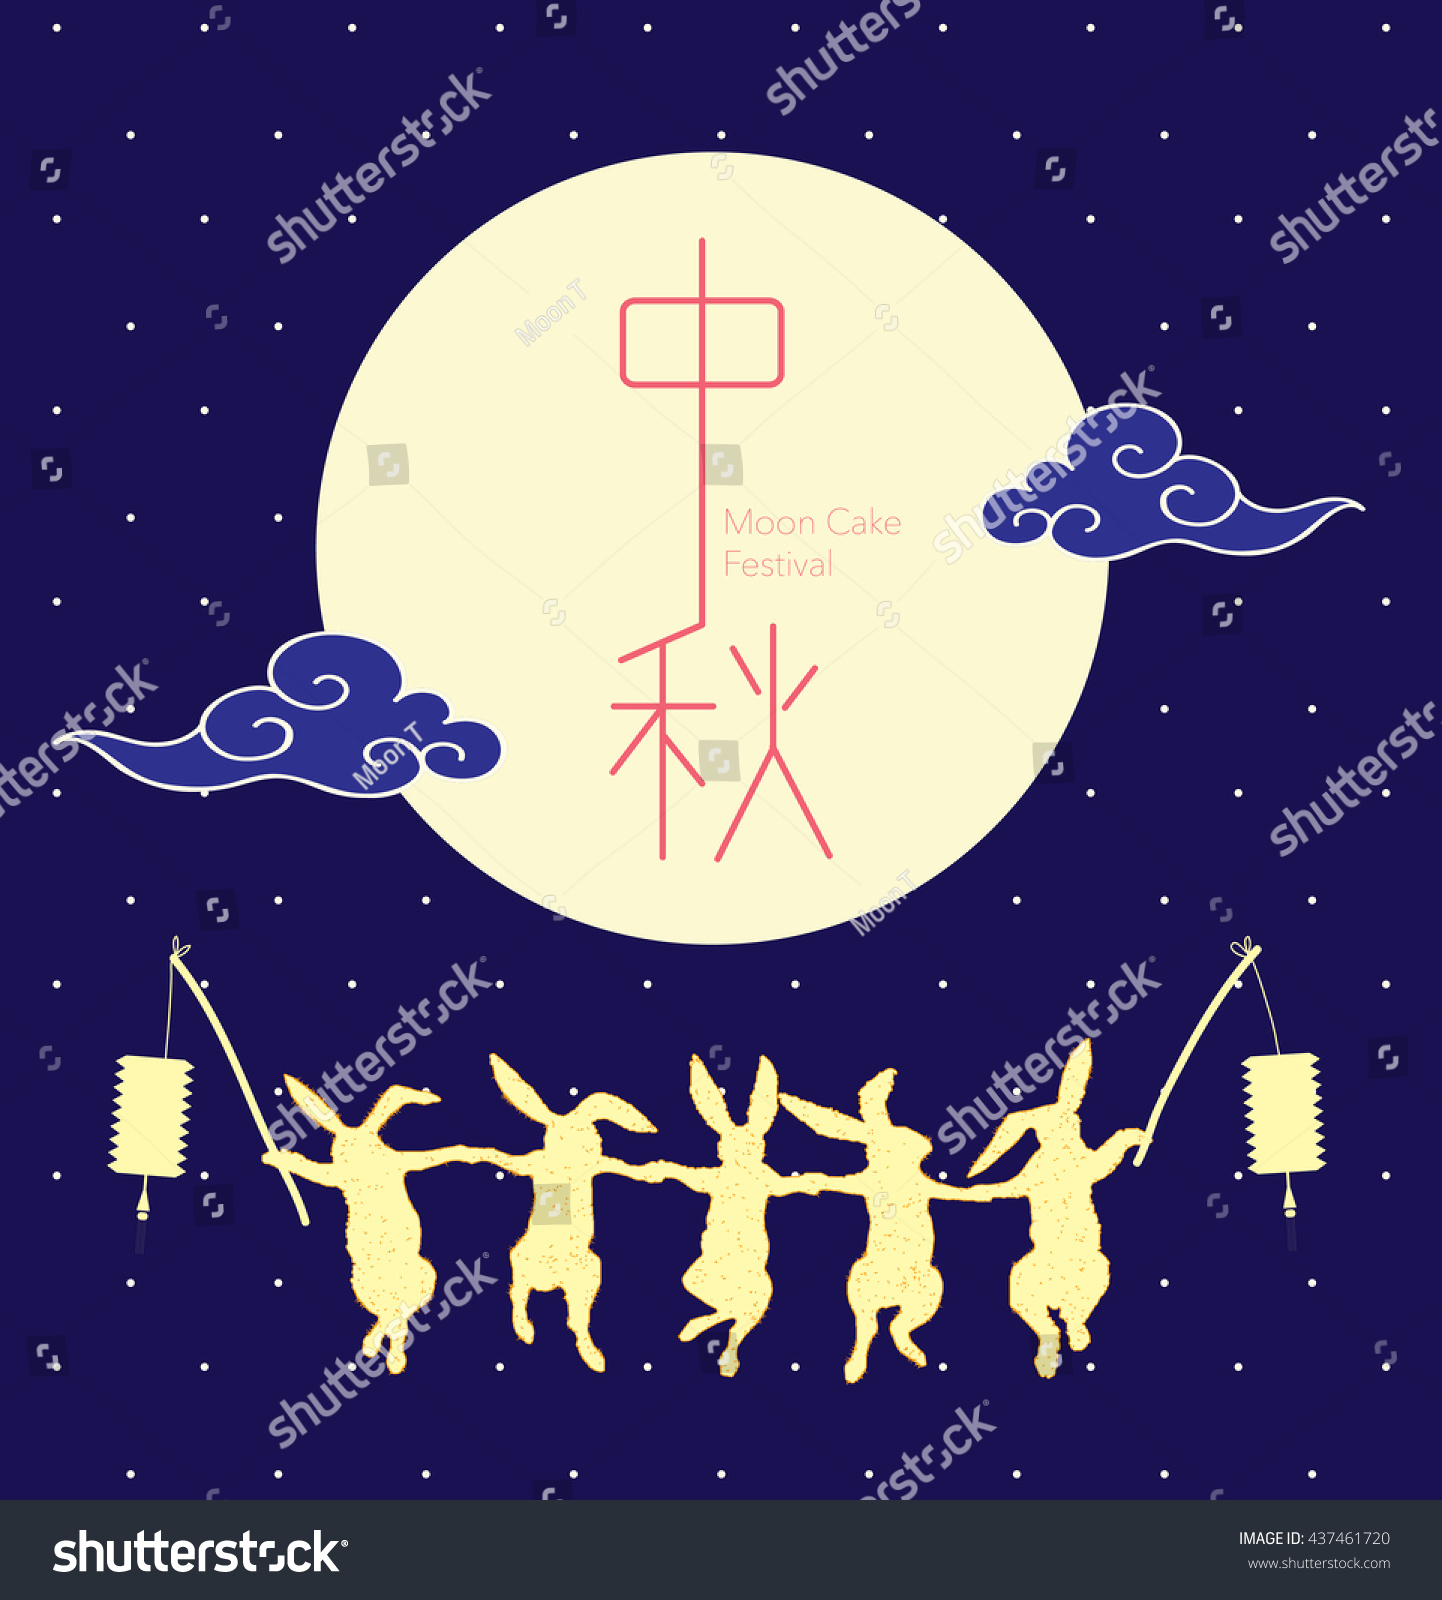 how to say rabbit in the moon in chinese